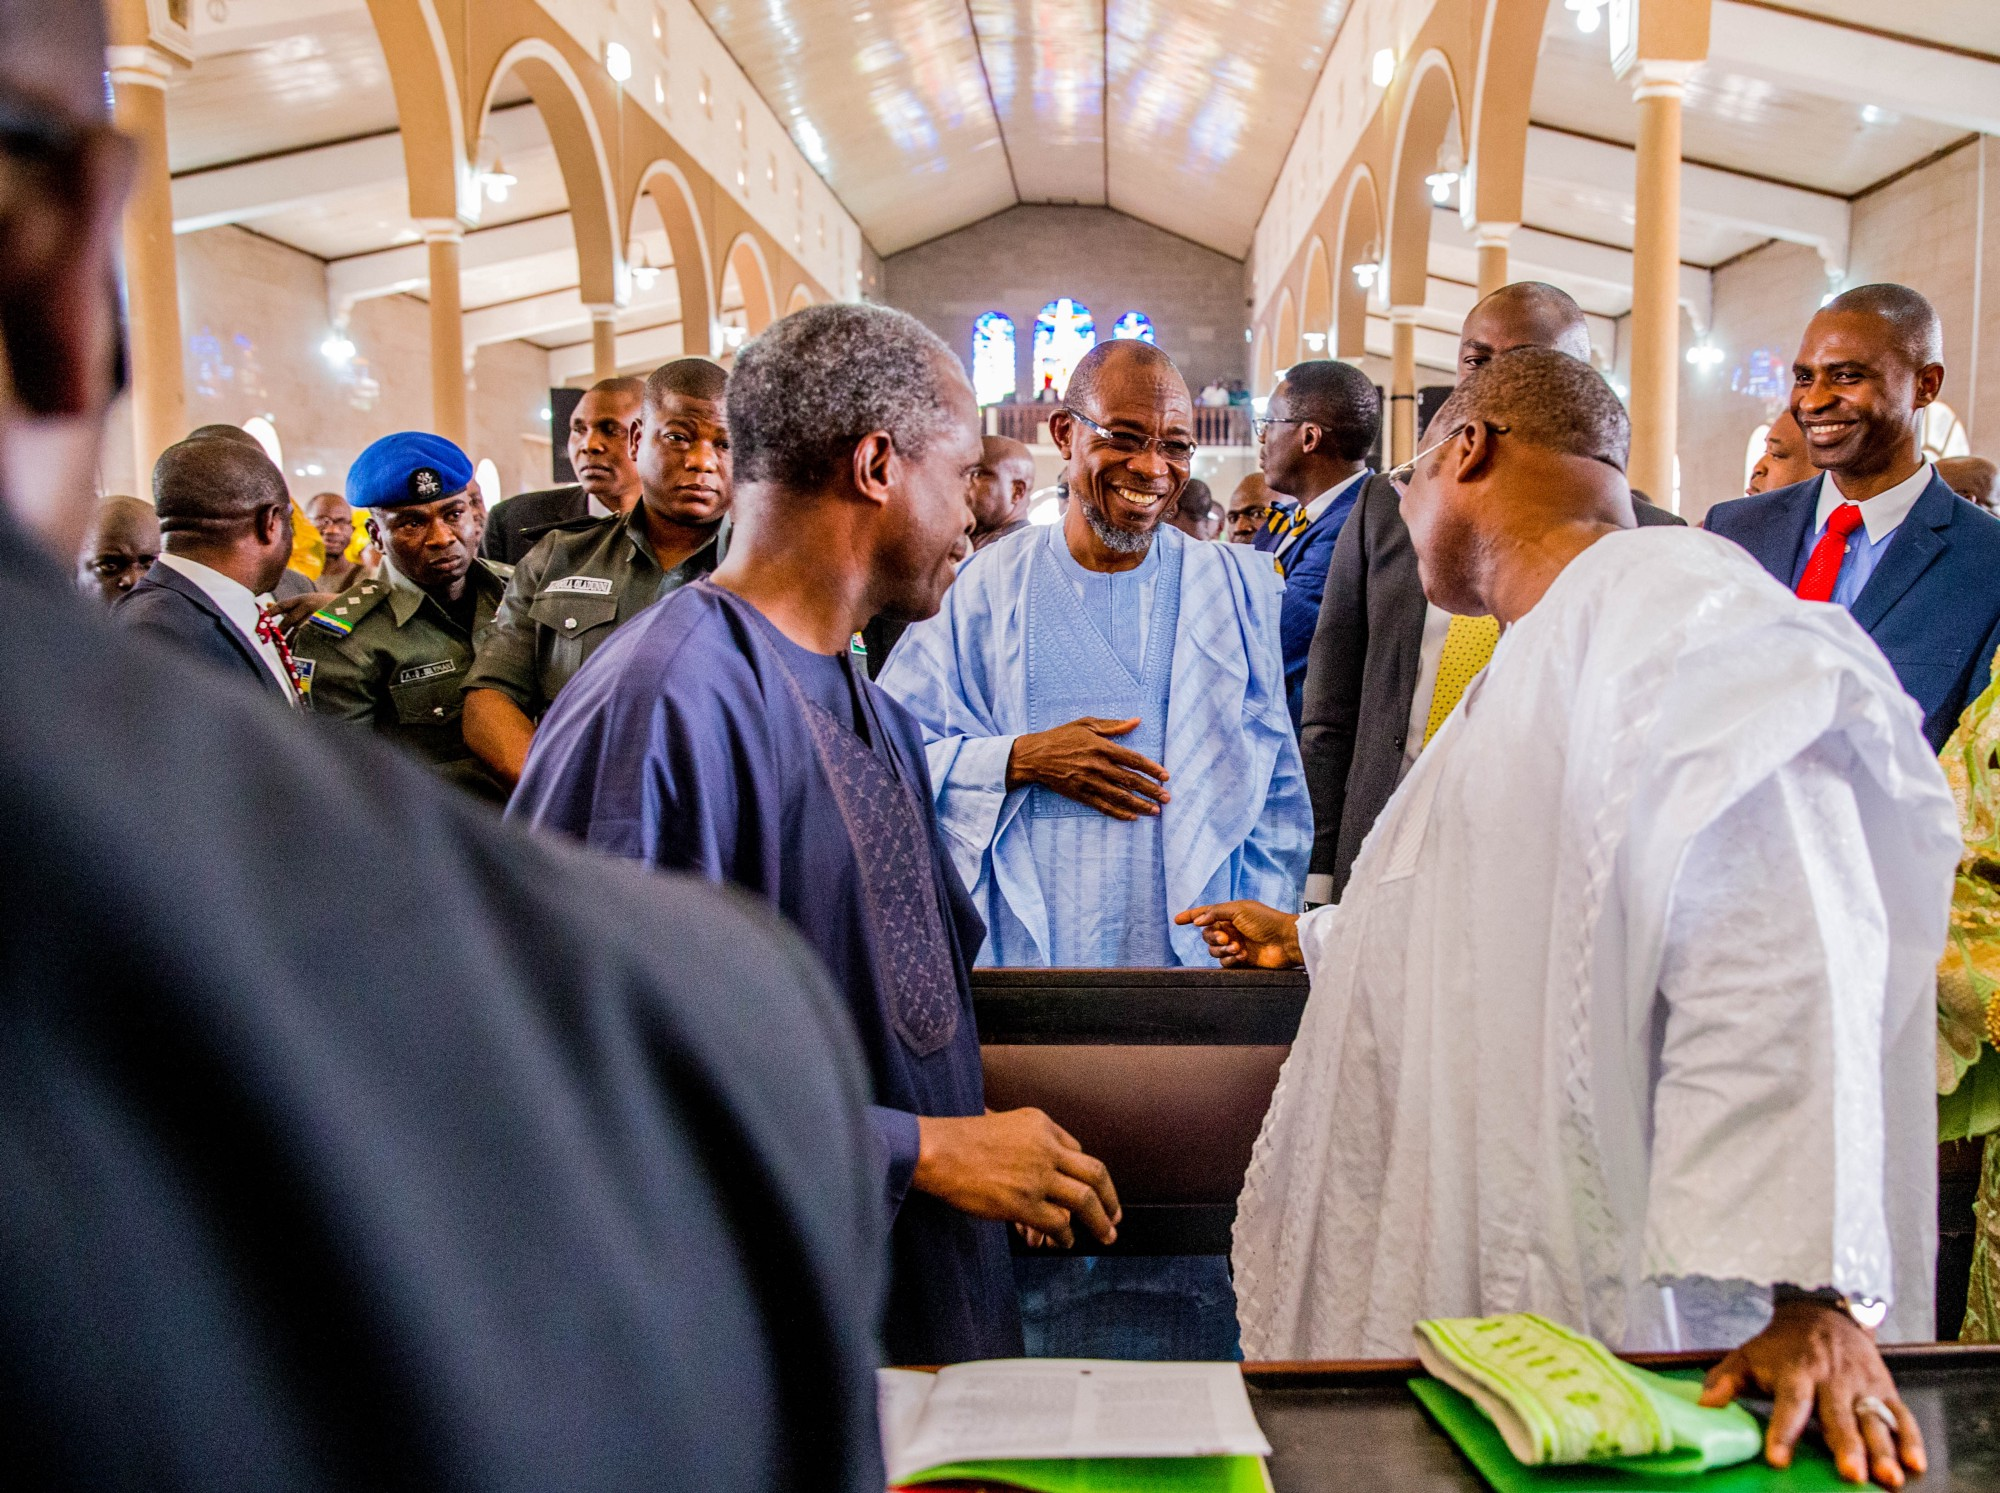 Vice- President Prof. Yemi Osinbajo and Governor Ajimobi greet Governor of The State of Osun Ogbeni Rauf Aregbesola during the funeral service for the Olubadan of Ibadanland at the Cathedral of St Peter, Aremo, Ibadan. (Photo by: Tolani Alli)